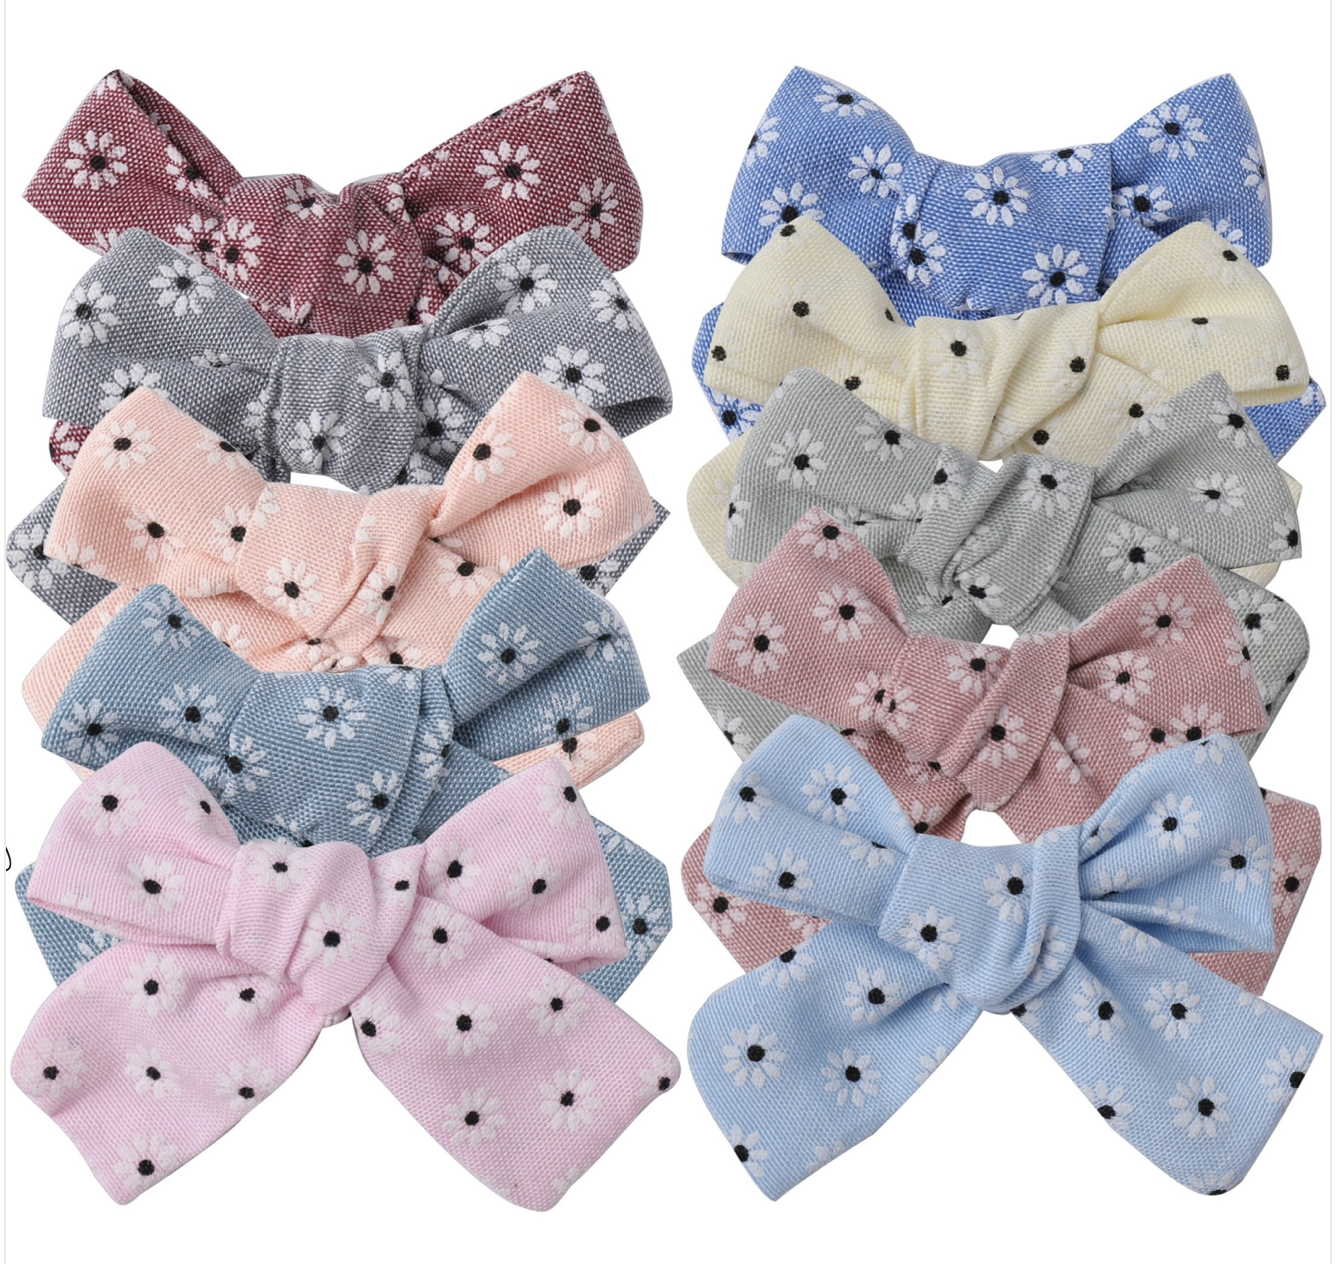 Hair Clips for Baby and Toddlers